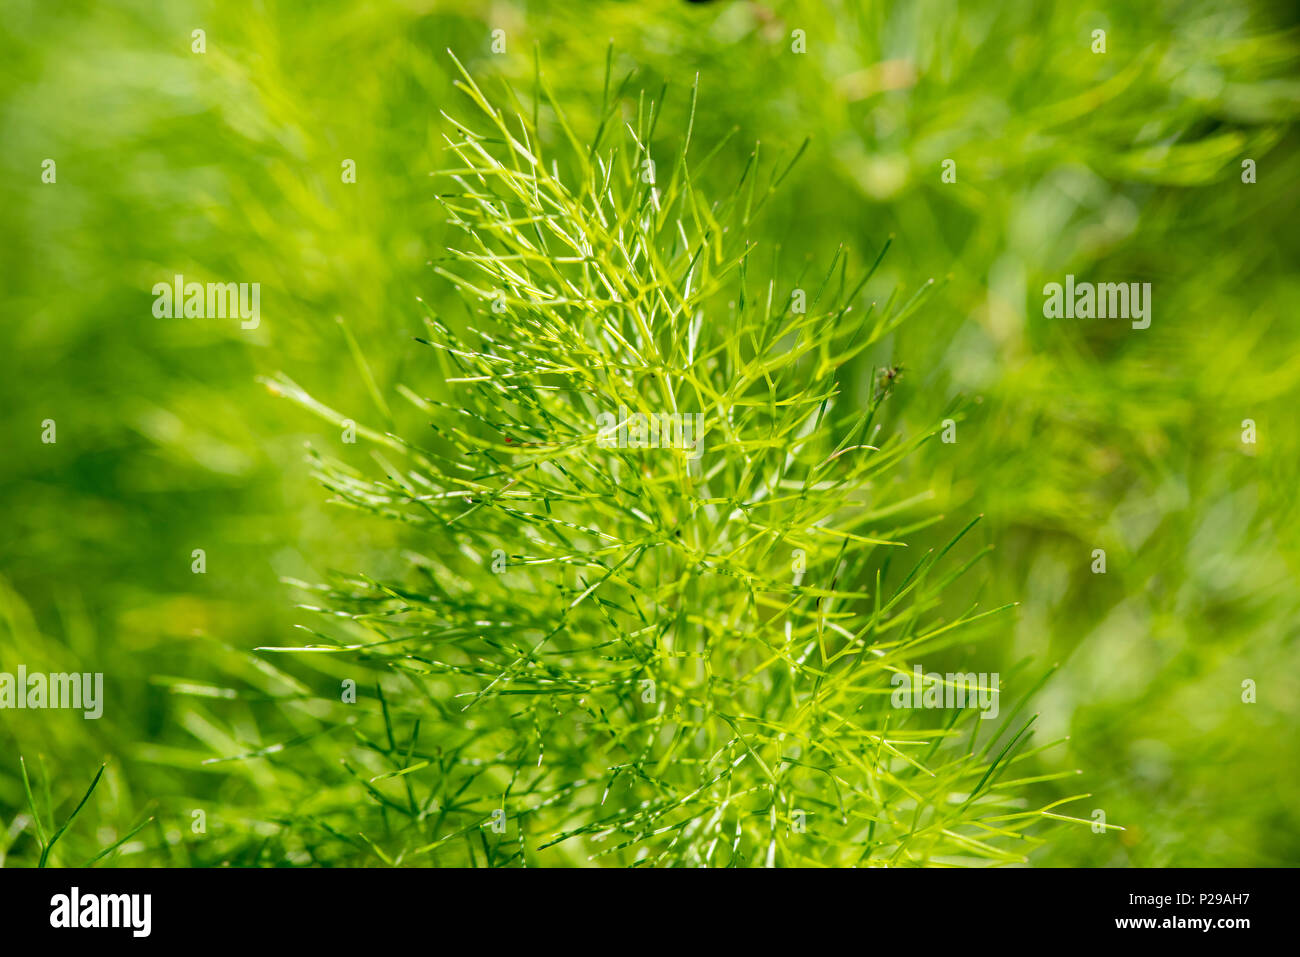 Fenchel Pflanzen Bilder Fenchel Pflanze Stock Photos Fenchel Pflanze Stock Images